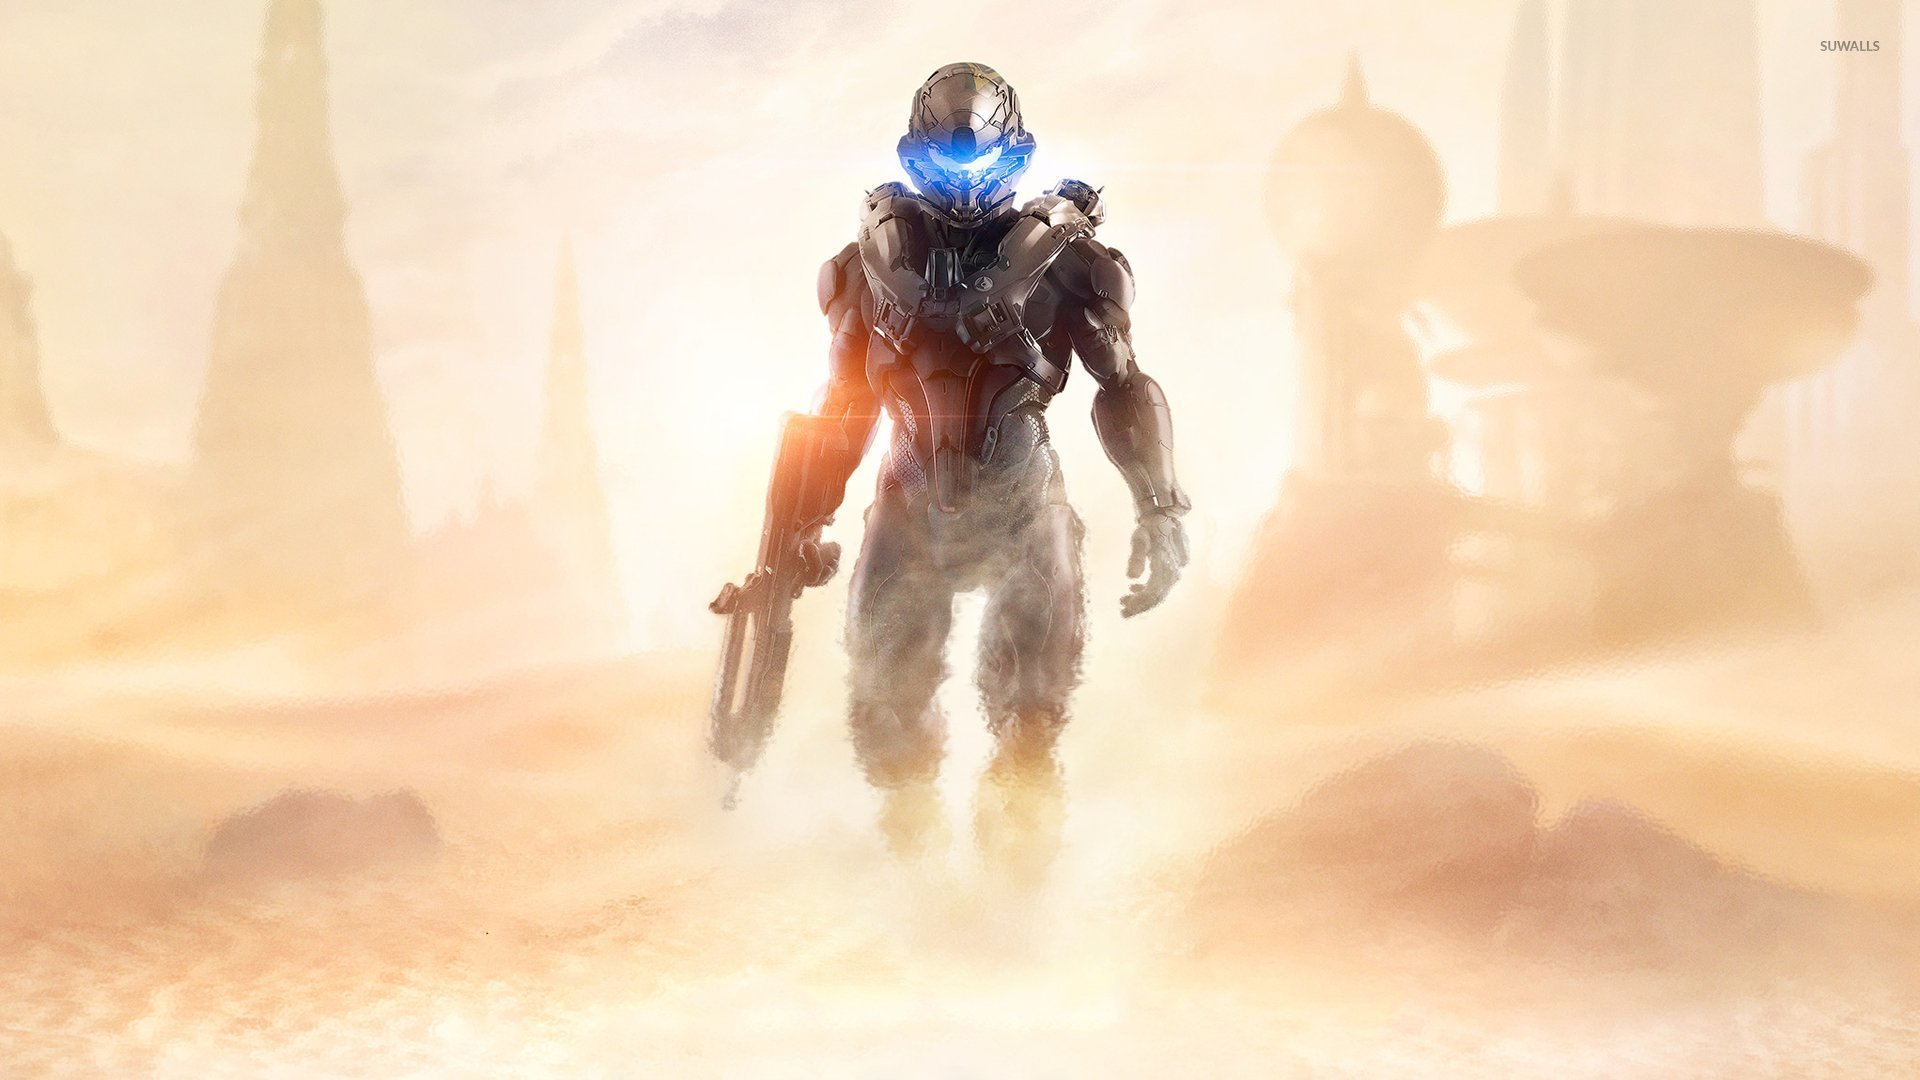 Halo 5 Guardians wallpaper   Game wallpapers   30994 1920x1080